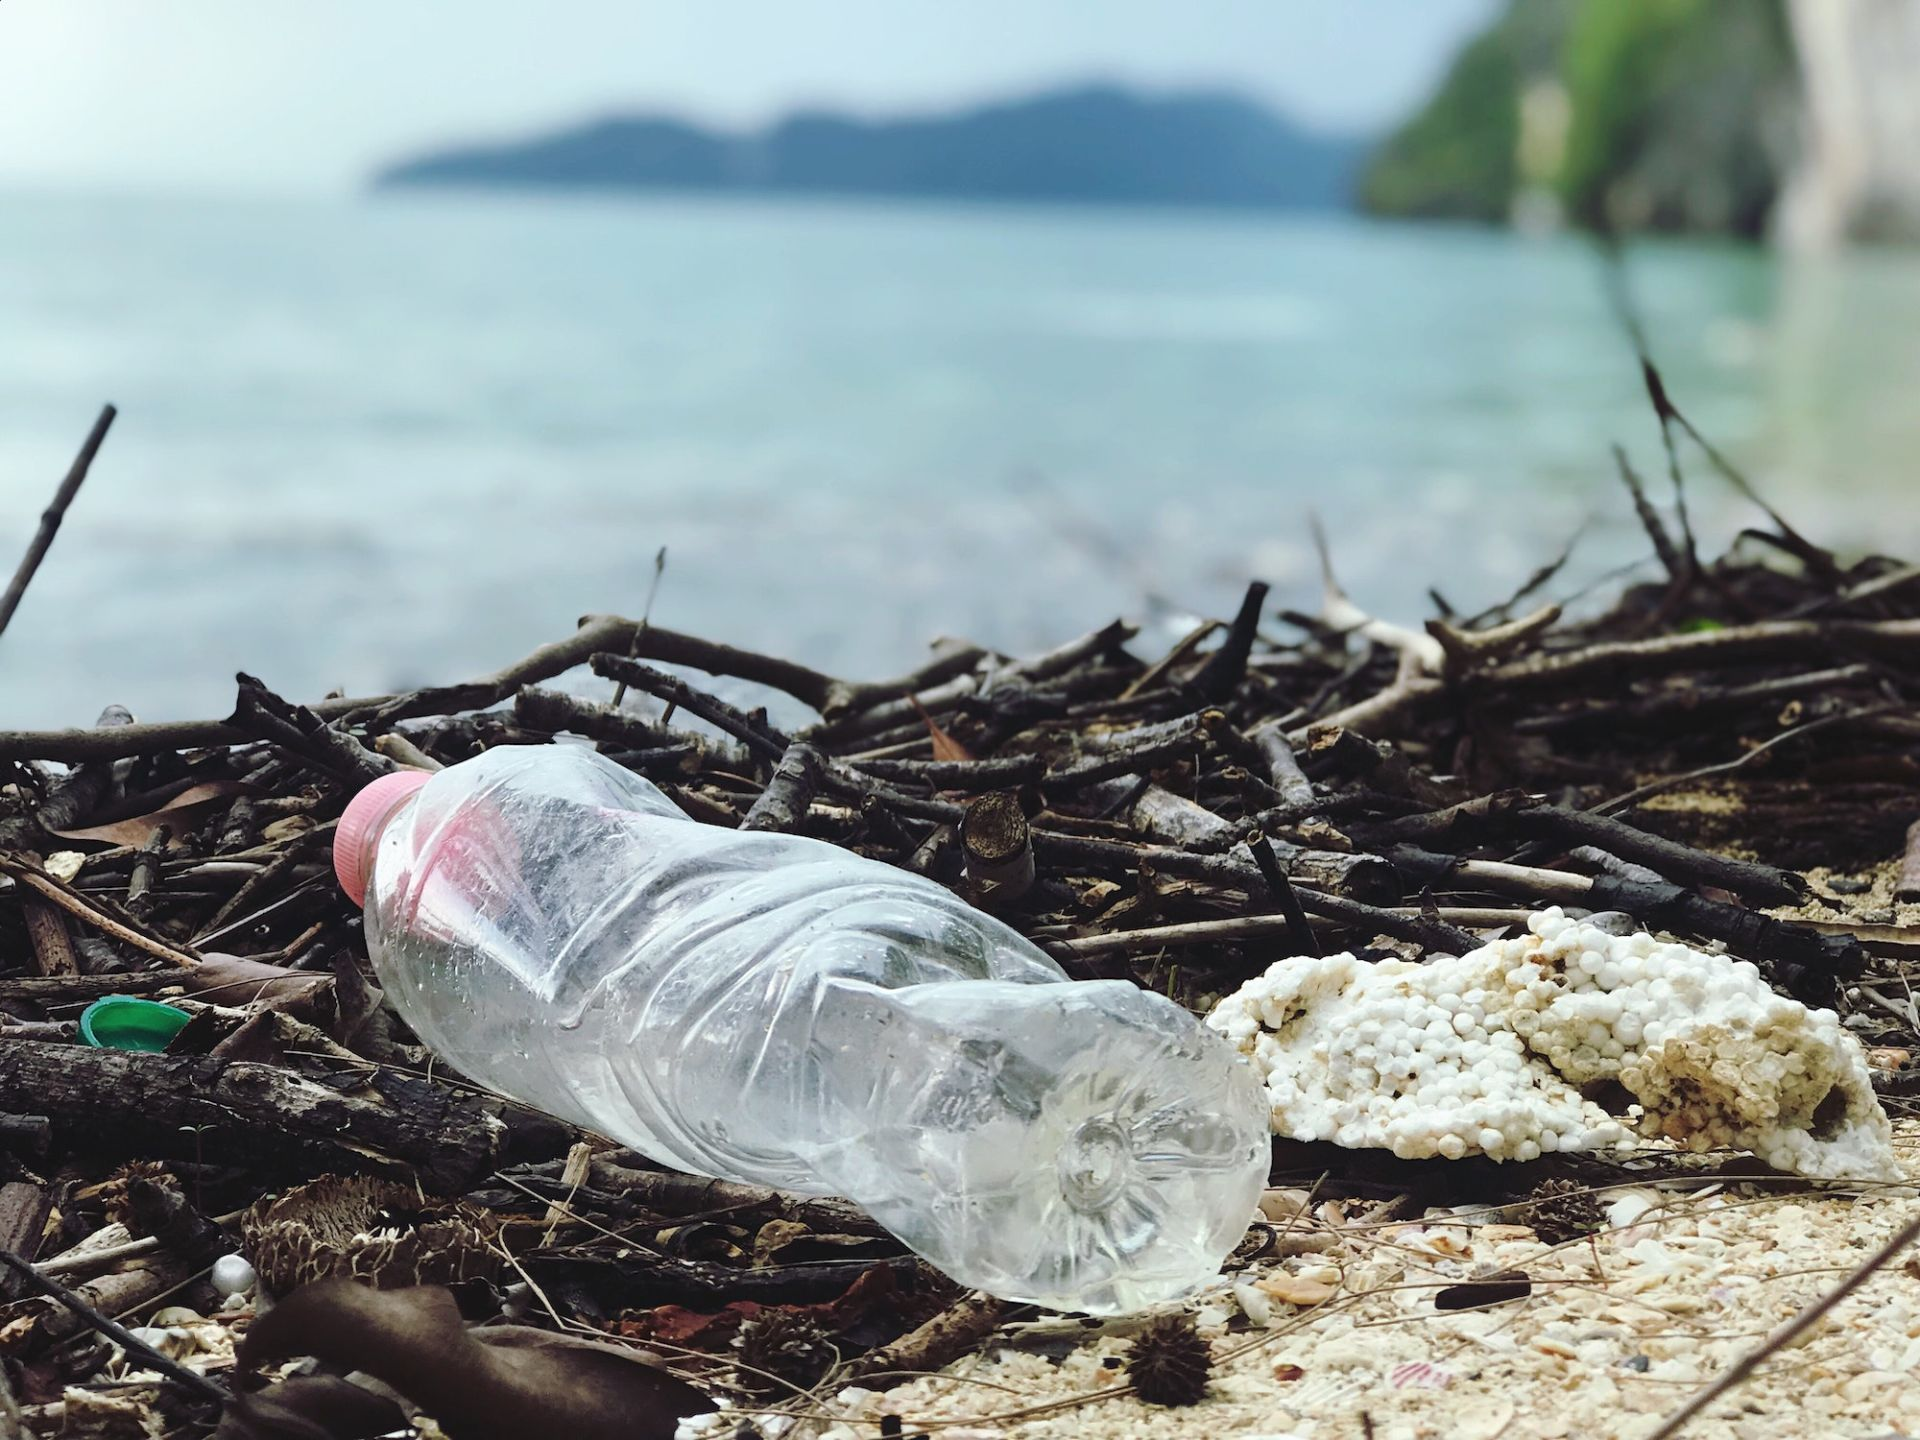 Heriot-Watt PhD Opportunity: Tracking the fate of plastic biodegradation under environmentally relevant conditions